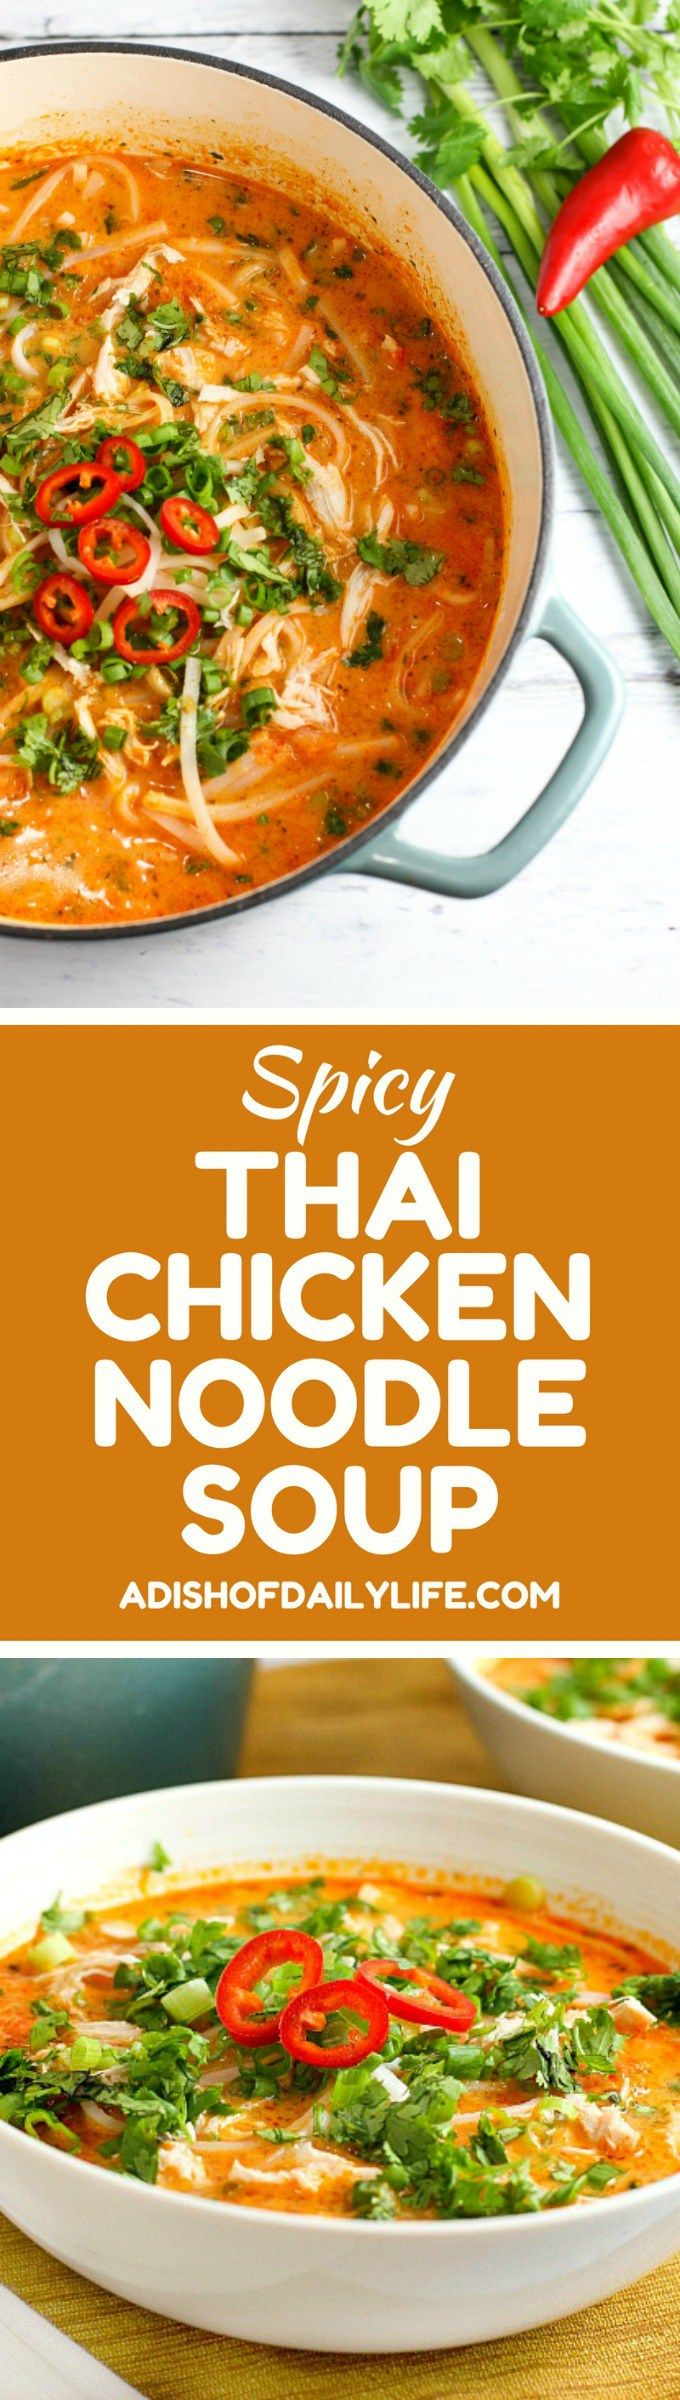 Skip the takeout! This delicious Thai Chicken Noodle Soup is easy to make at home with ingredients you can find in your local